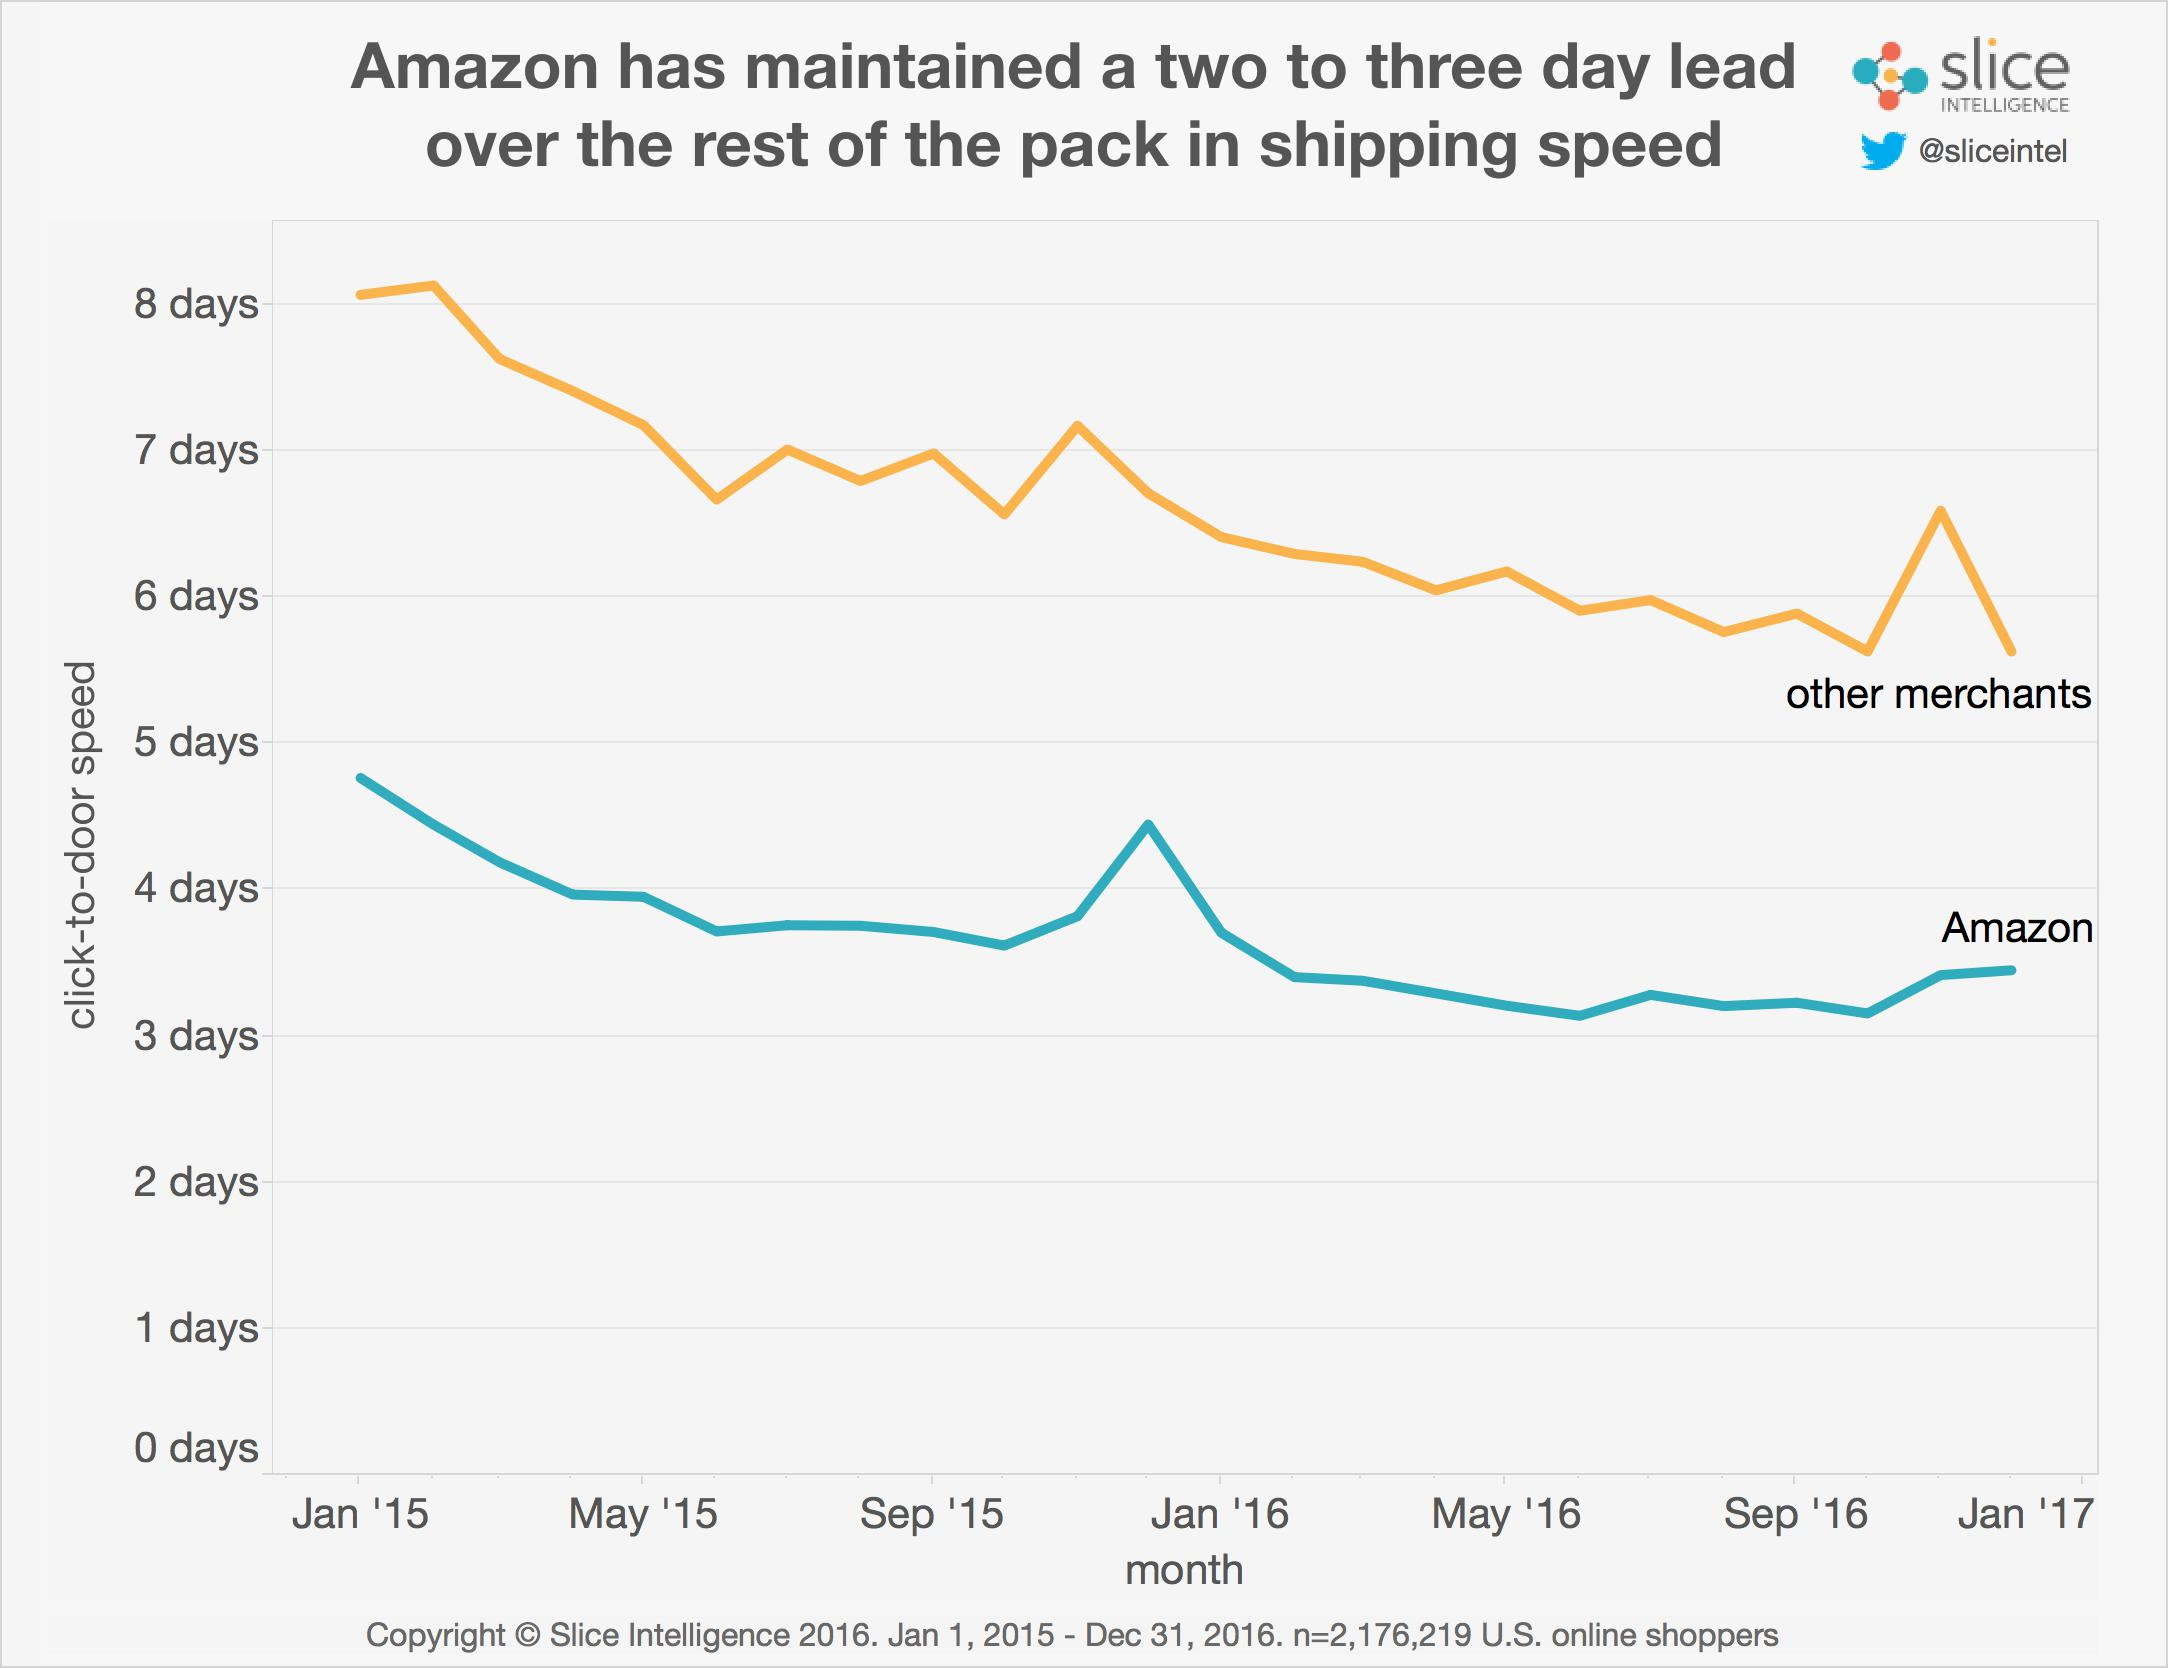 Amazon captured more than half of all online sales growth last amazon captured more than half of all online sales growth last year new data shows nvjuhfo Gallery